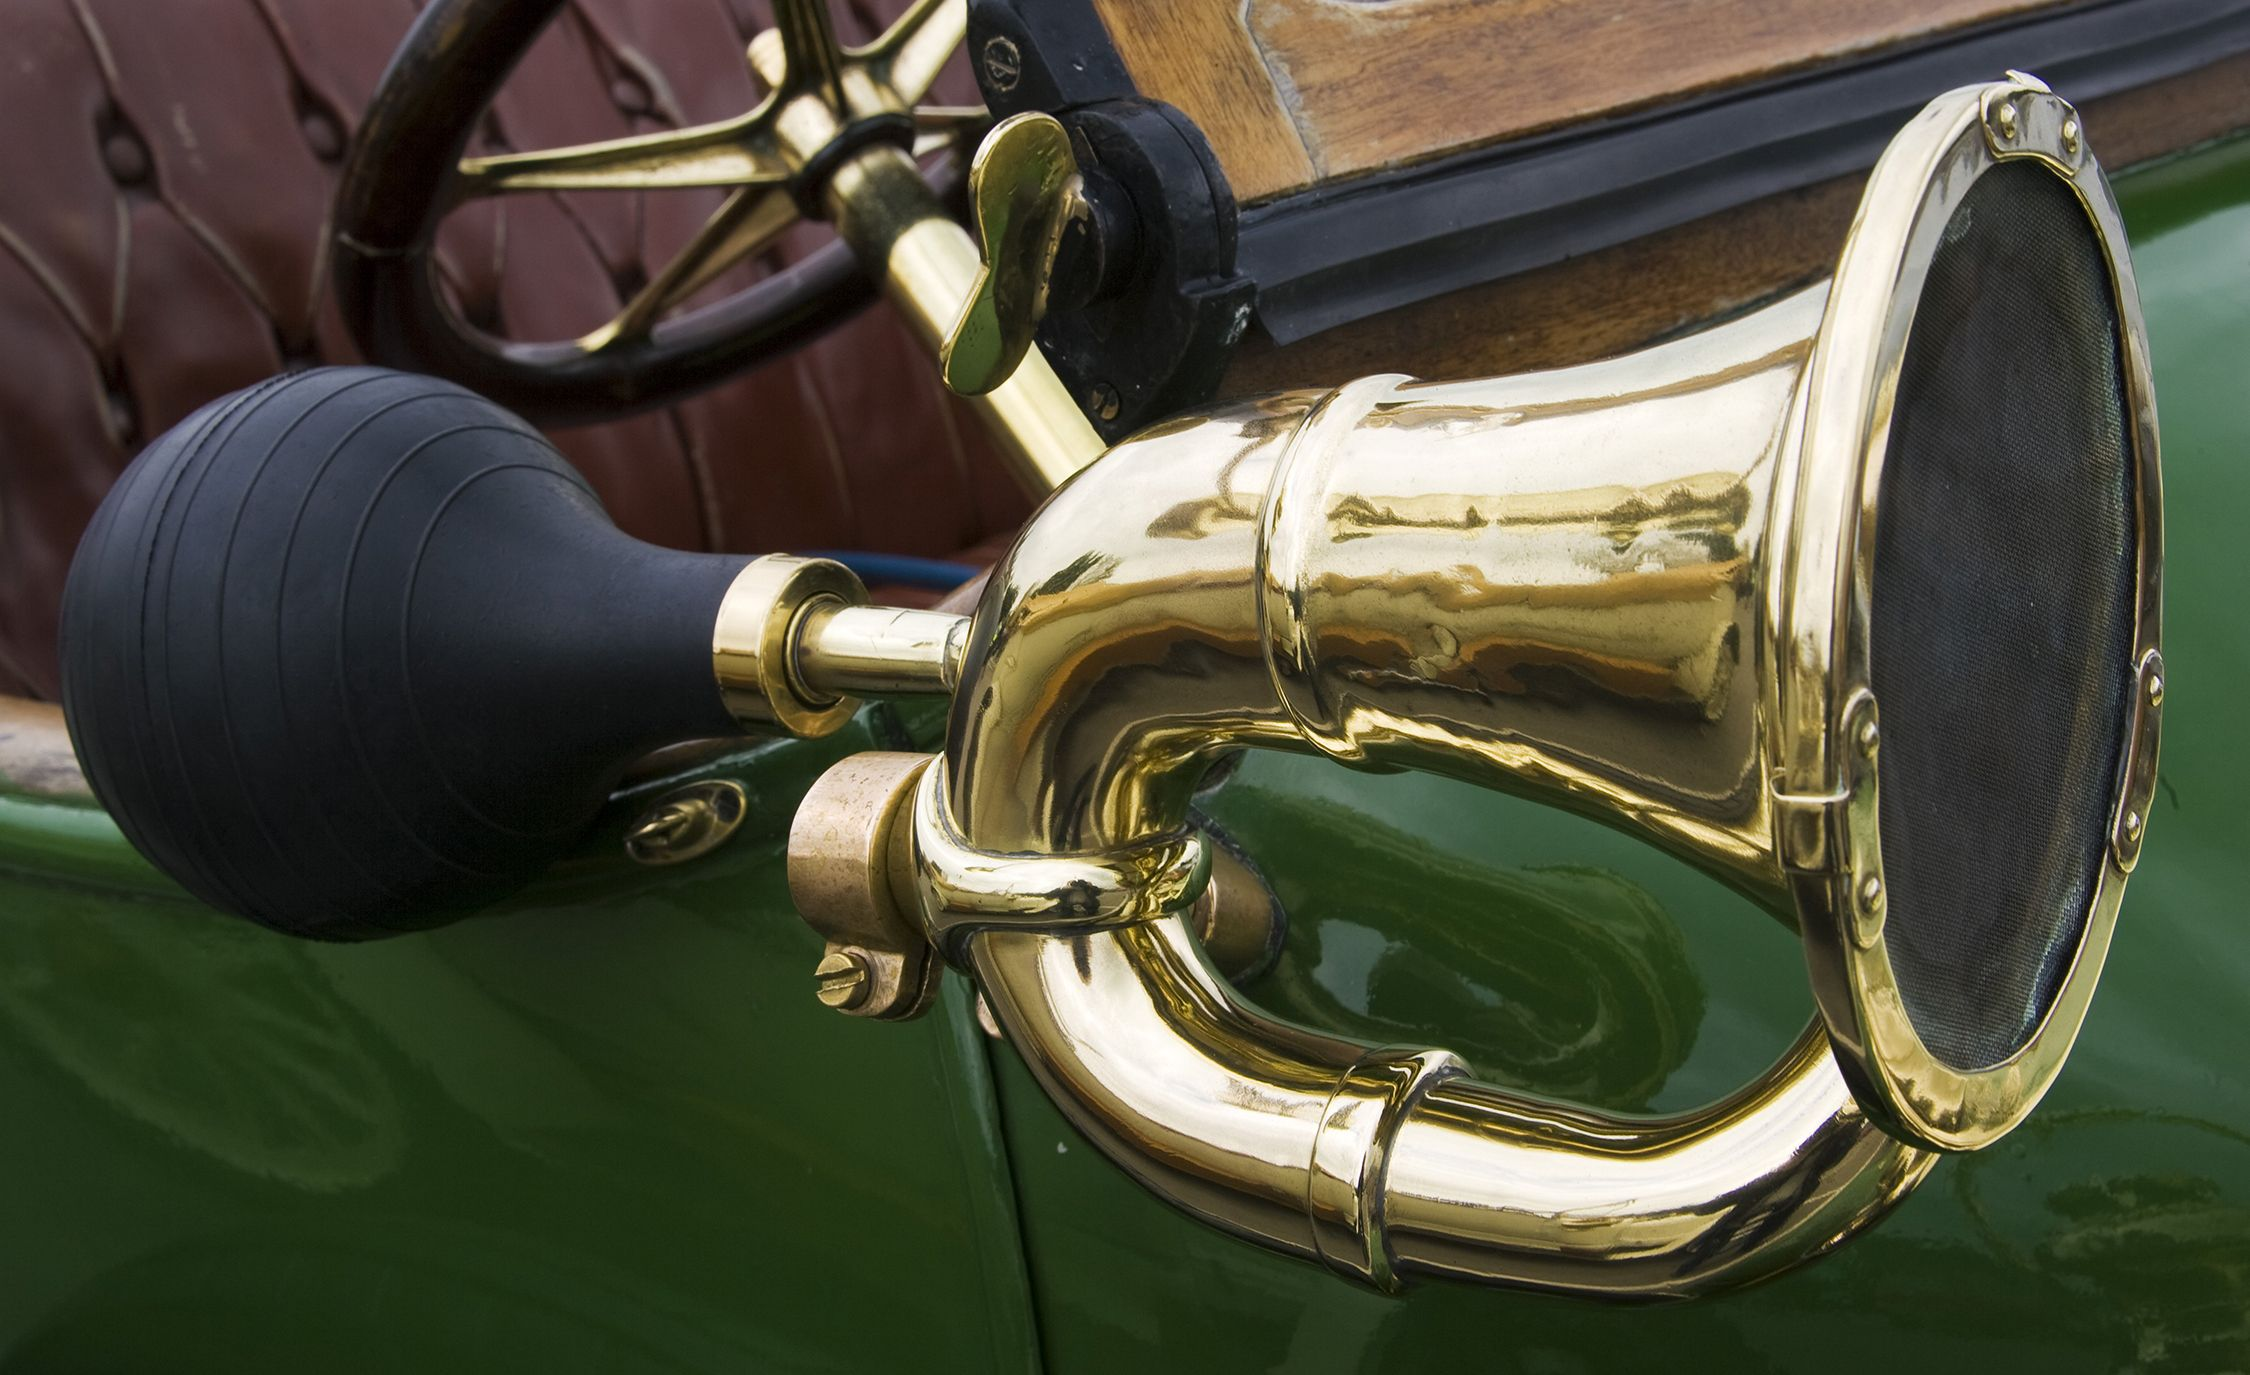 Meep Meep! The History and Evolution of Car Horns